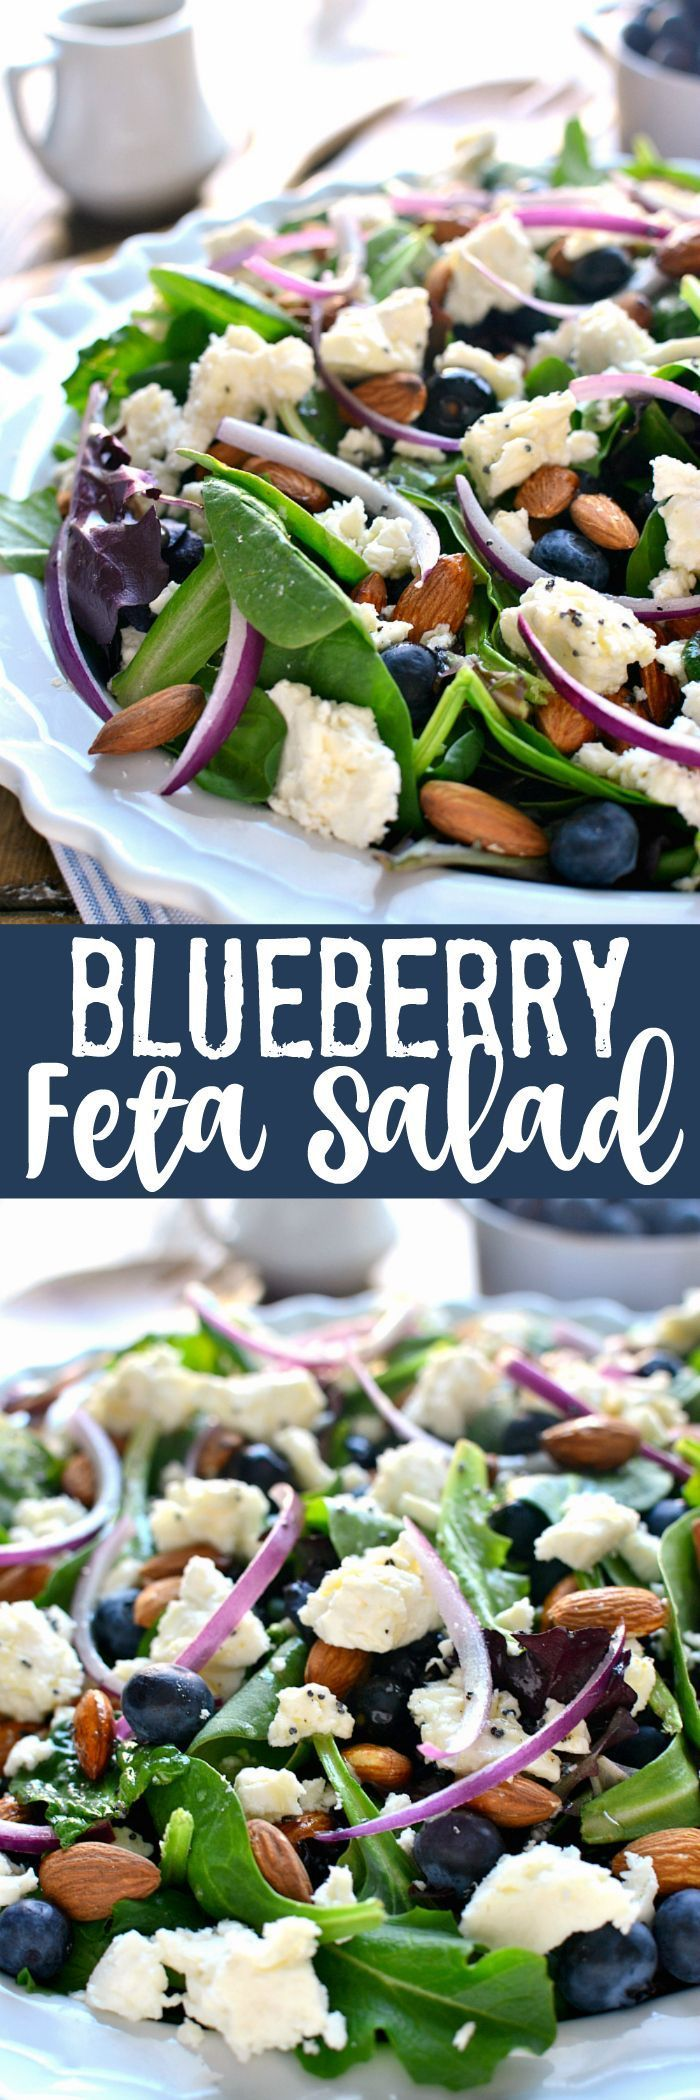 This Blueberry Feta Salad is your new go-to salad for spring! It combines fresh blueberries with feta cheese, almonds, and a lemon poppyseed vinaigrette. Perfect for a baby shower or Easter celebration!